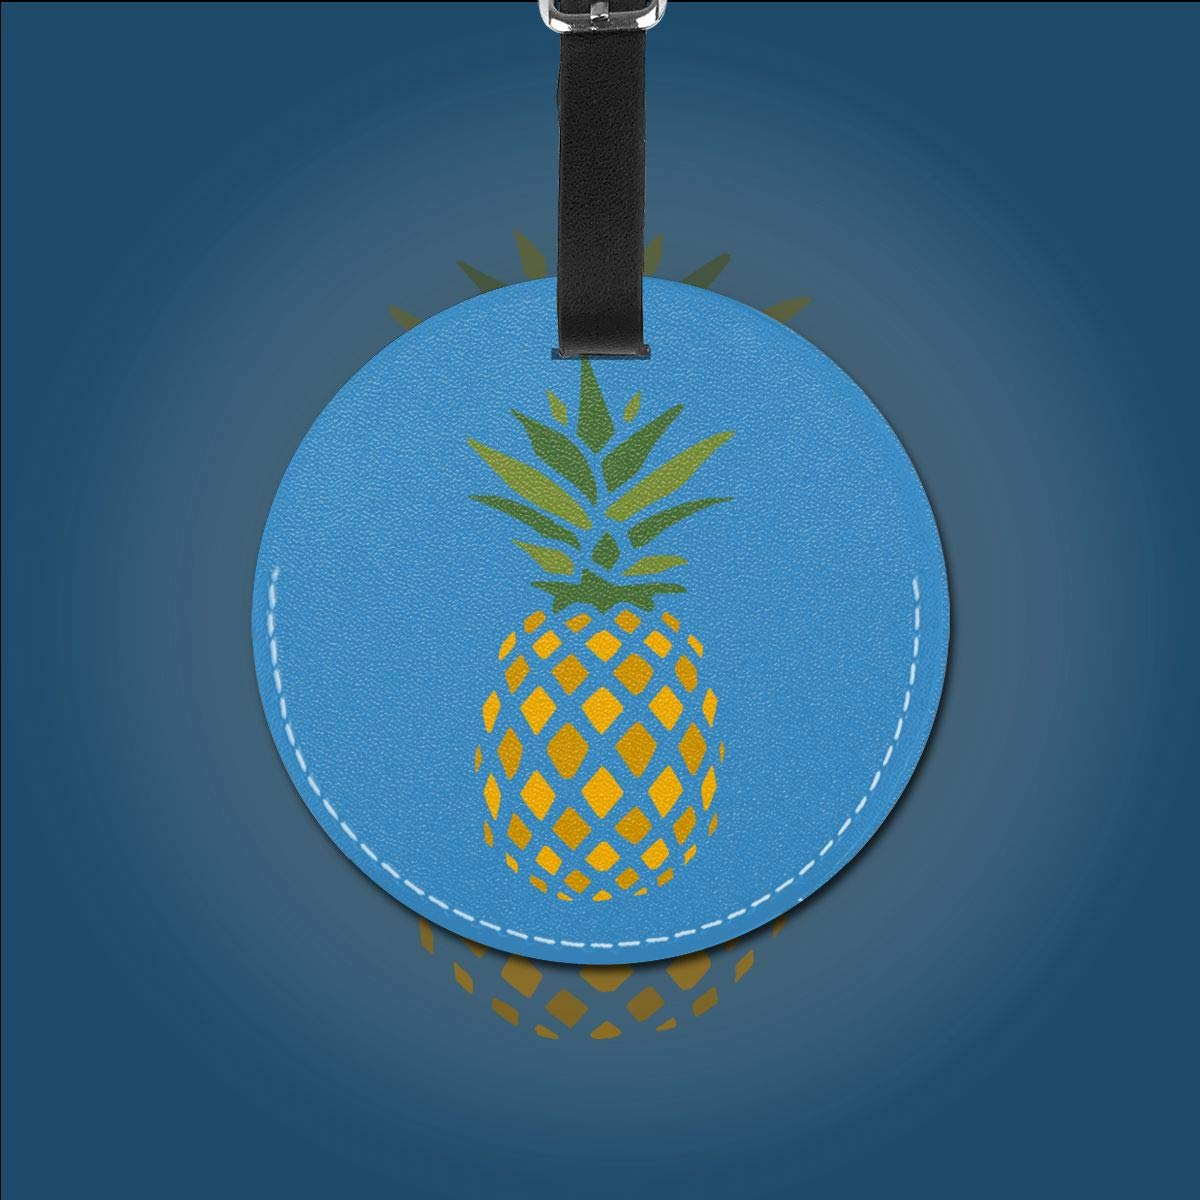 1pcs,2pcs,4pcs Creative Pineapple Right Down Pu Leather Double Sides Print Round Luggage Tag Mutilple Packs